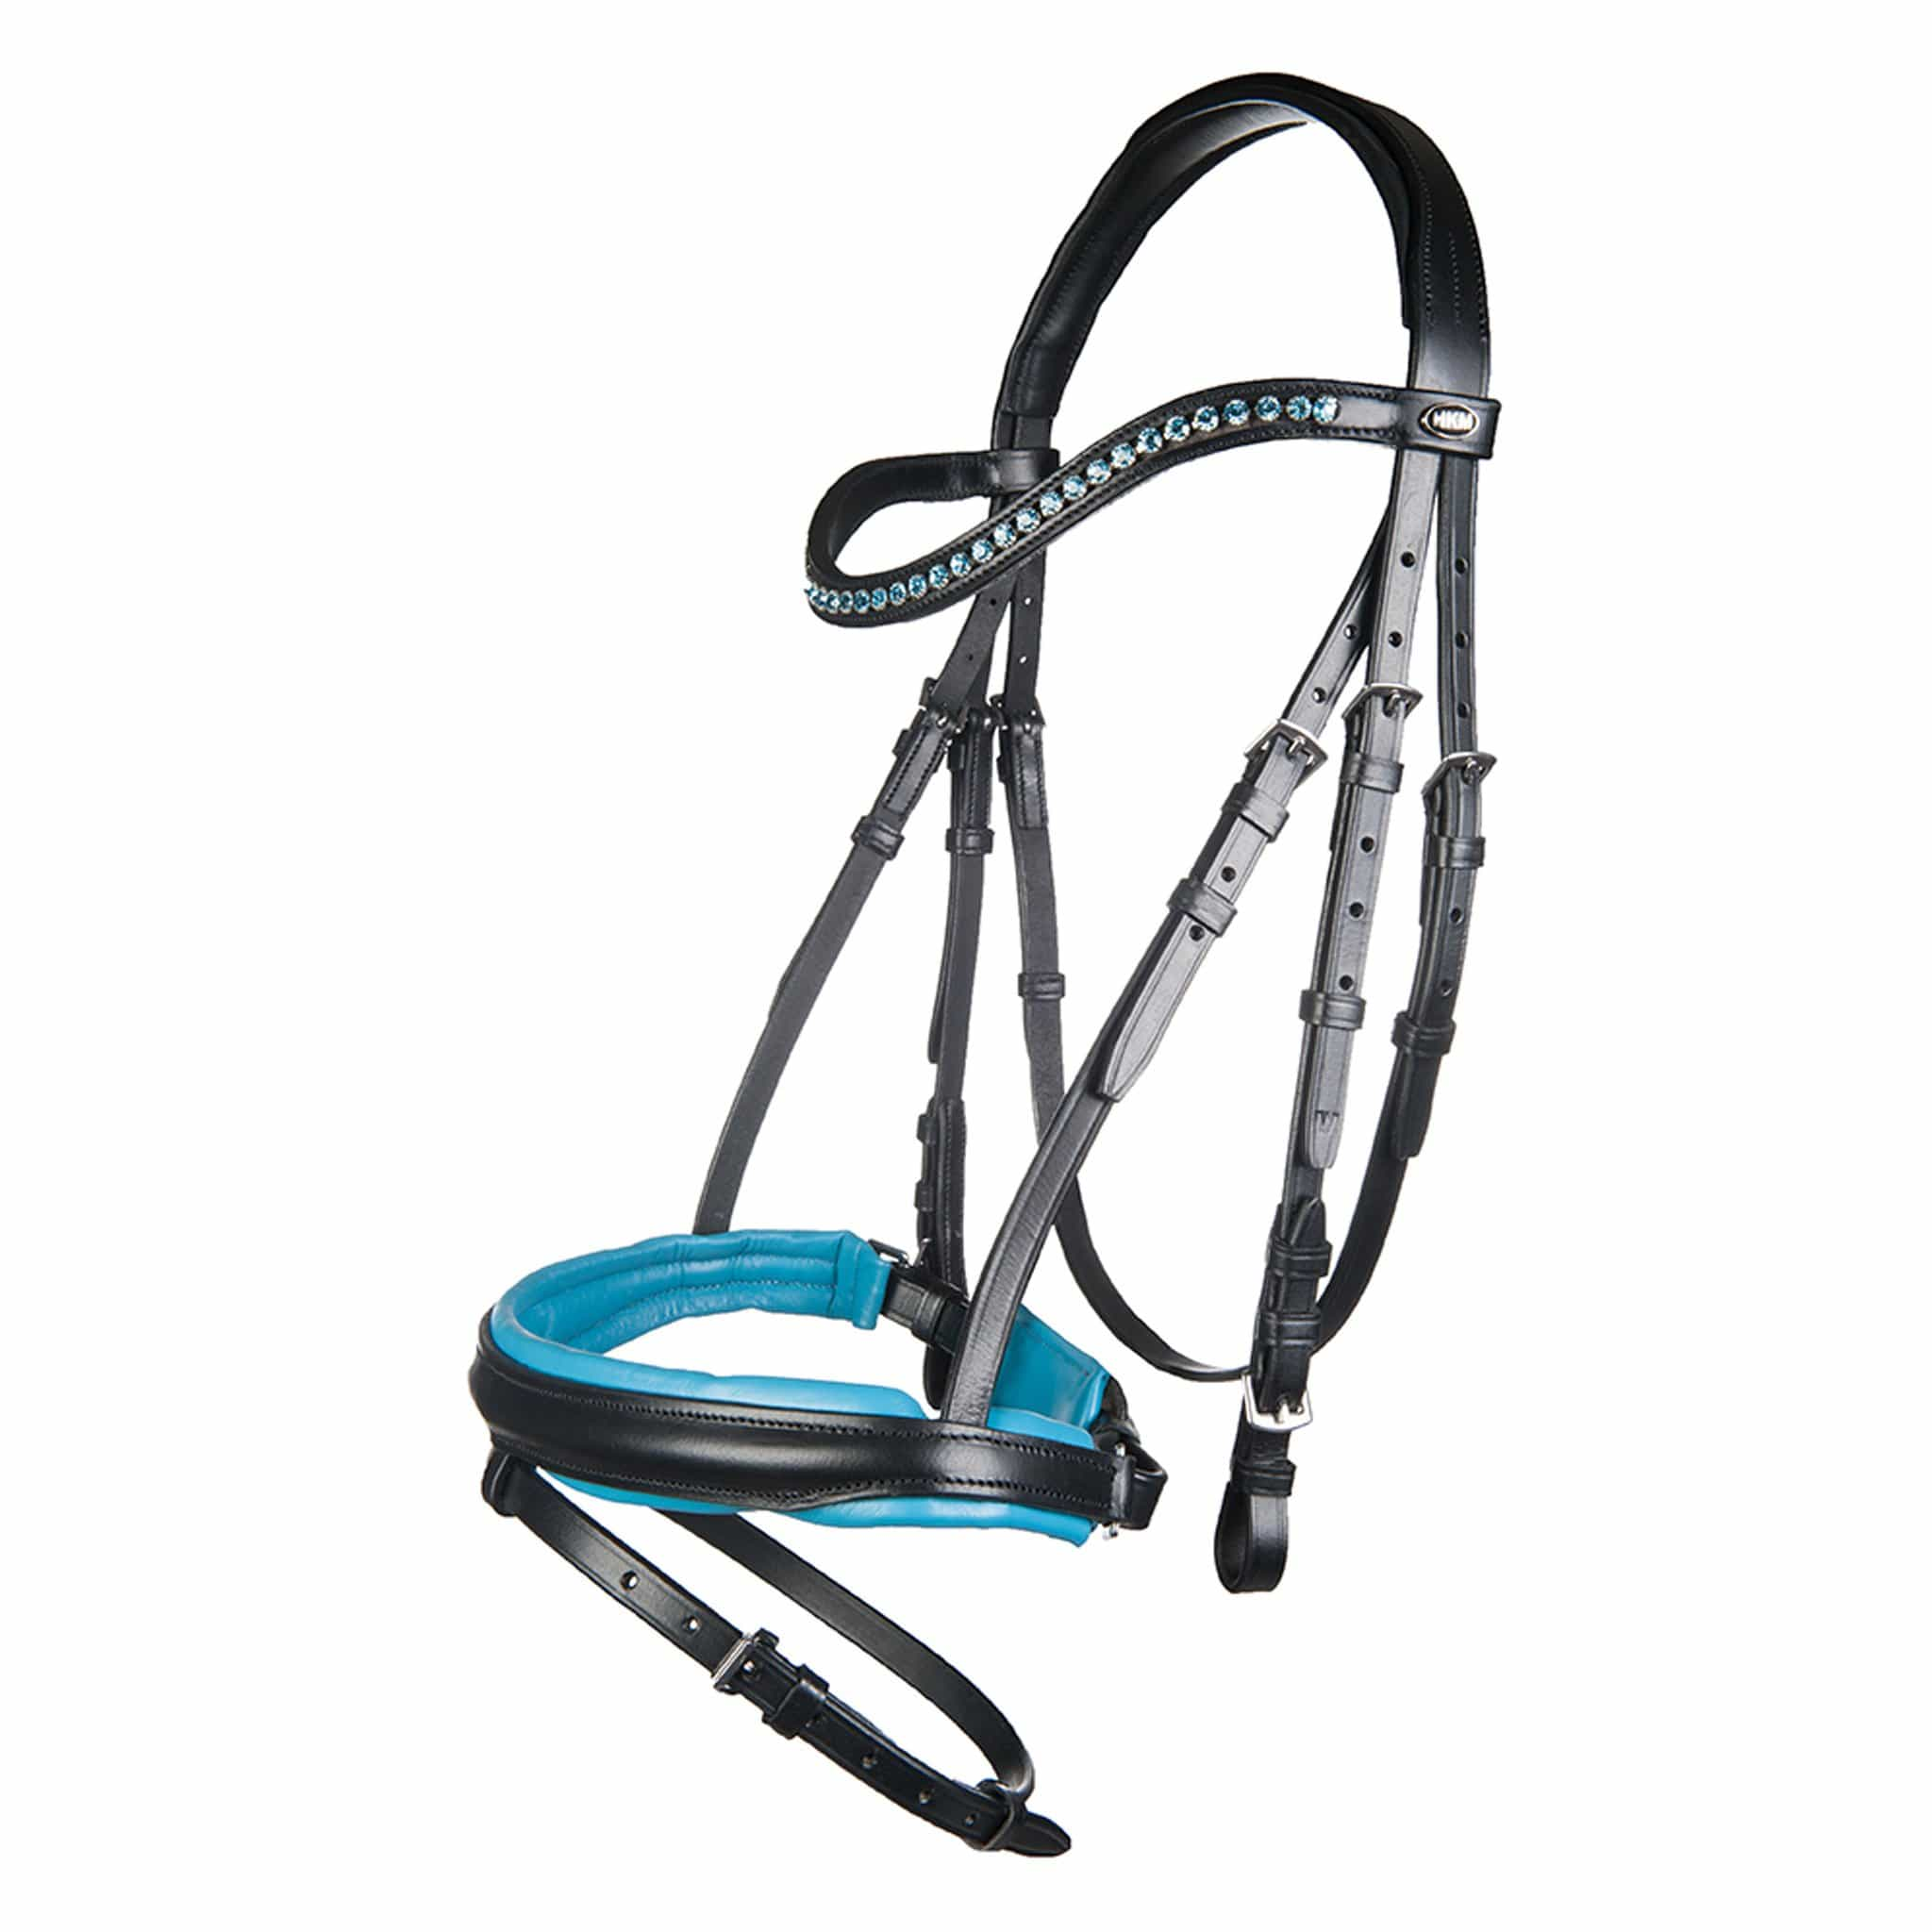 HKM Colour Bridle 11255 Black and Turquoise Blue Full Bridle